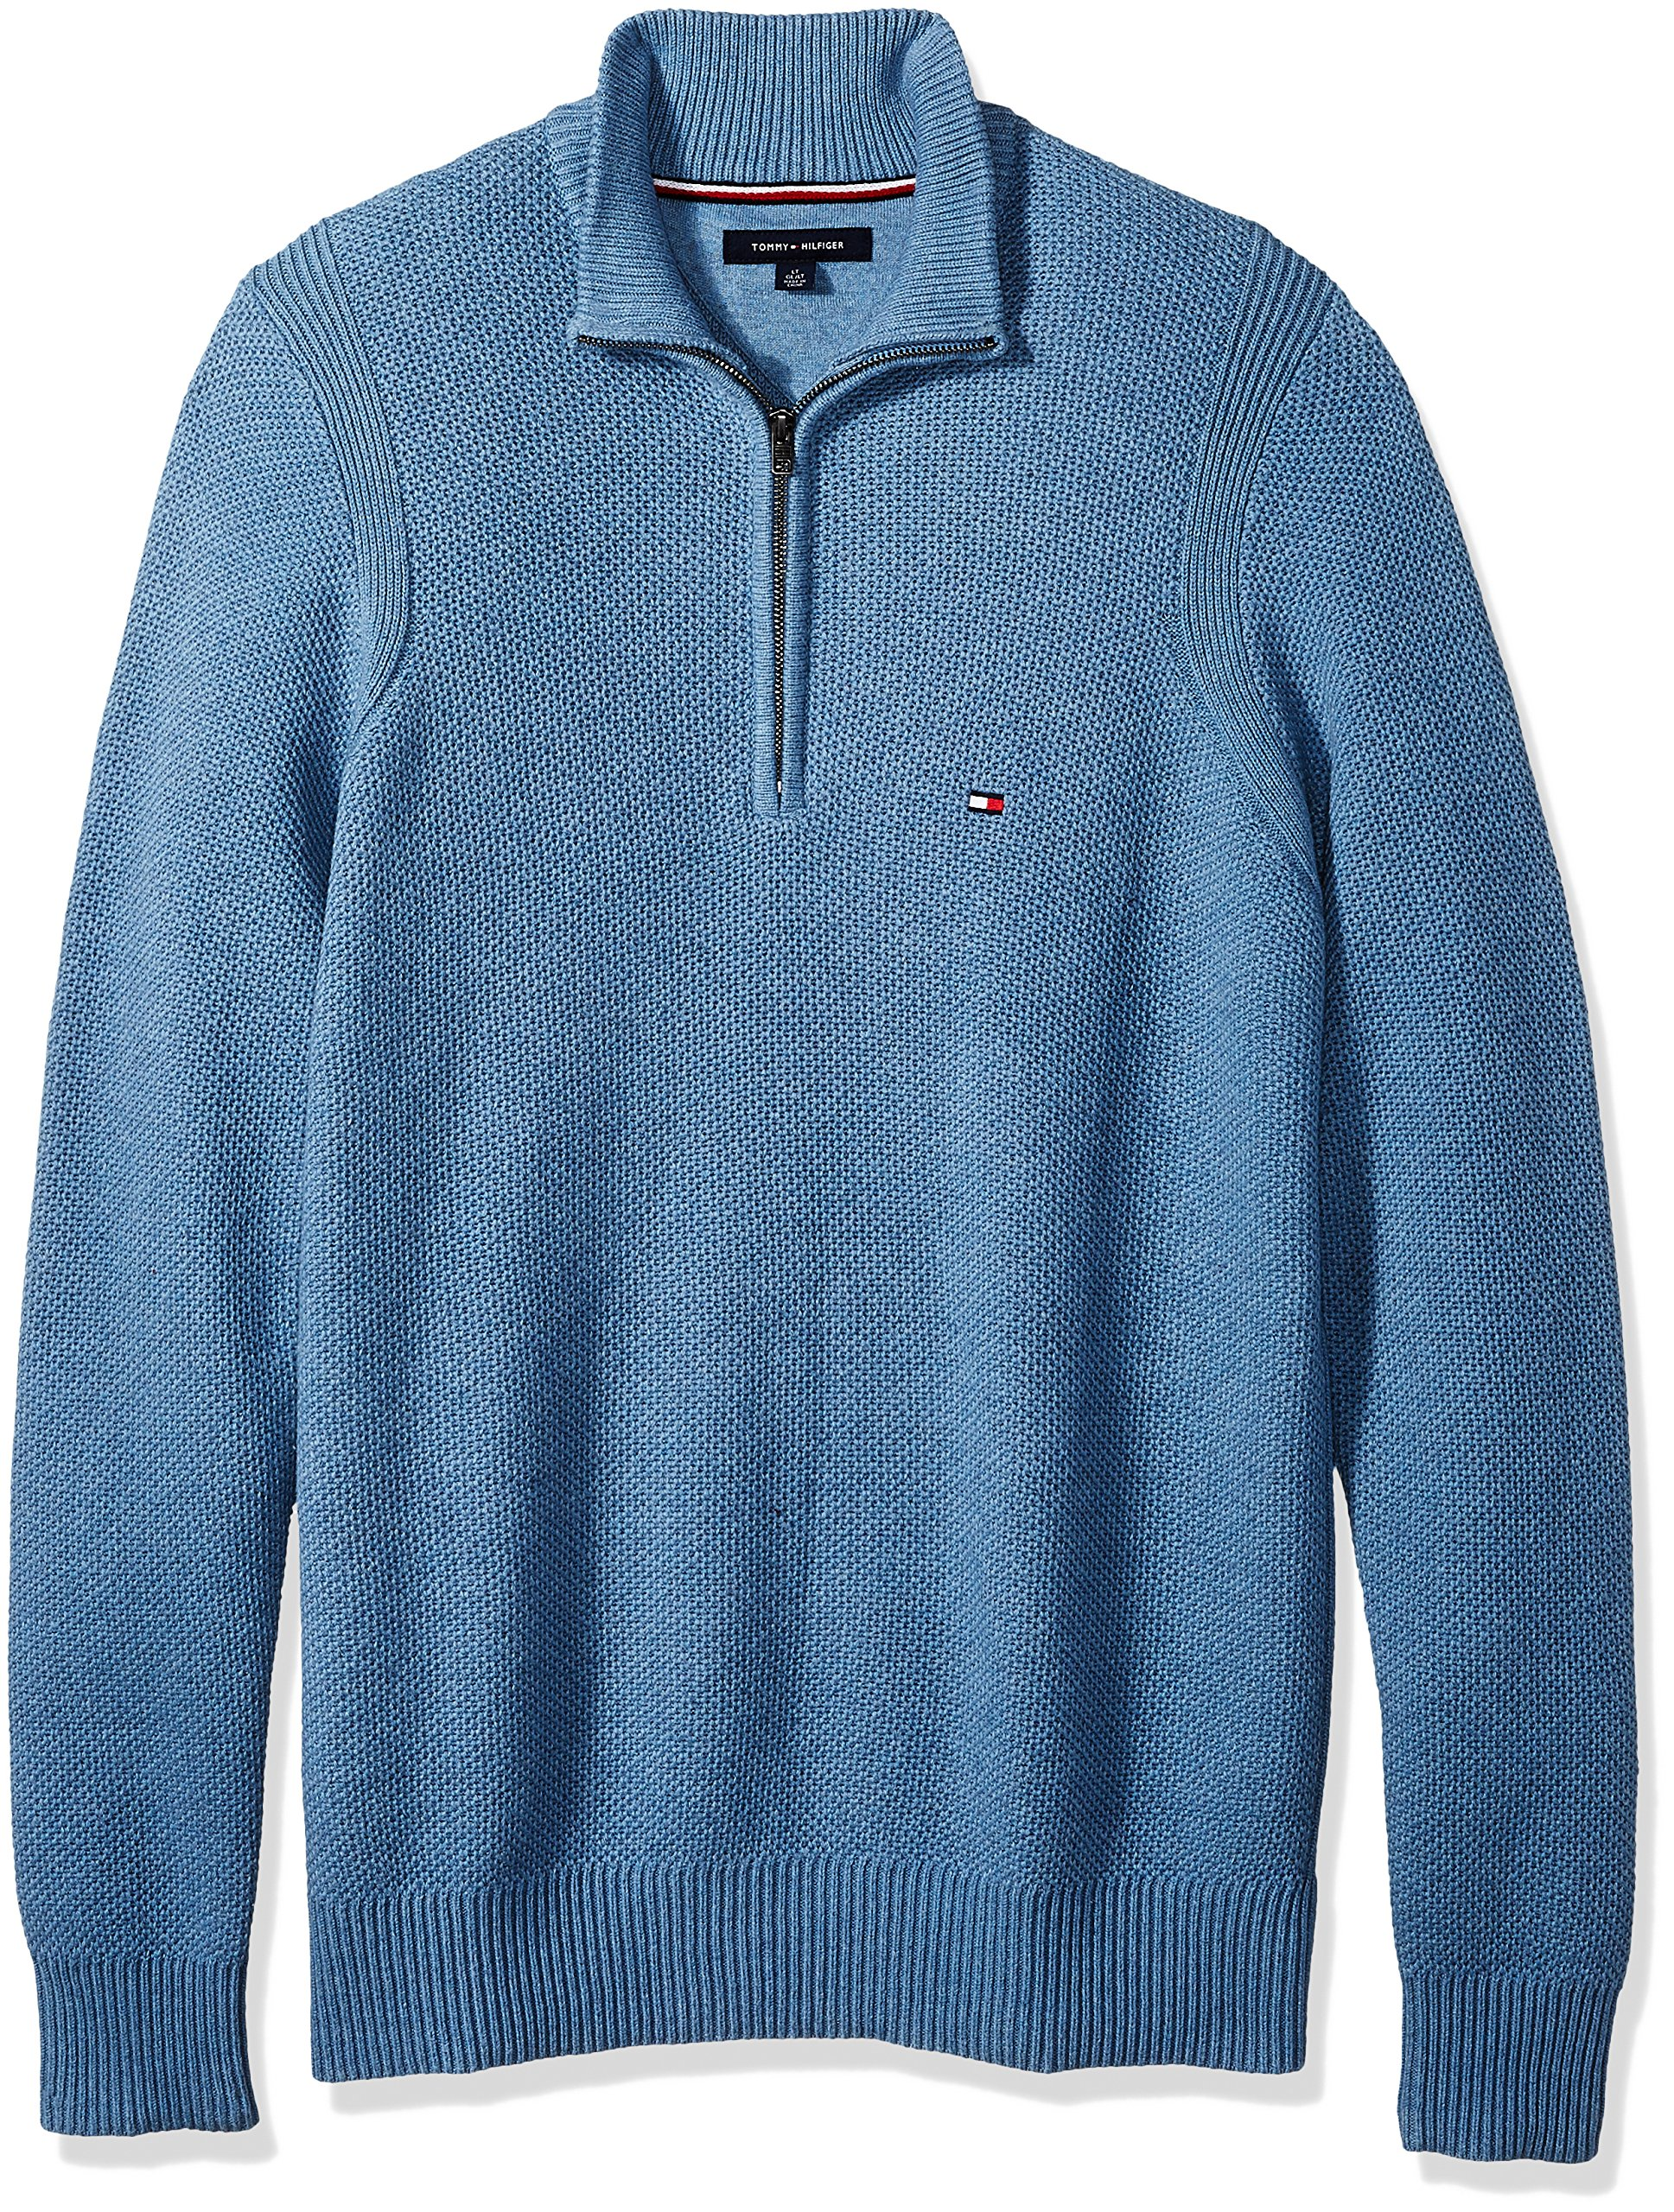 Tommy Hilfiger Men's Big and Tall 1/4 Zip Pullover Sweater, Medium Chambray Heather, BG-4XL